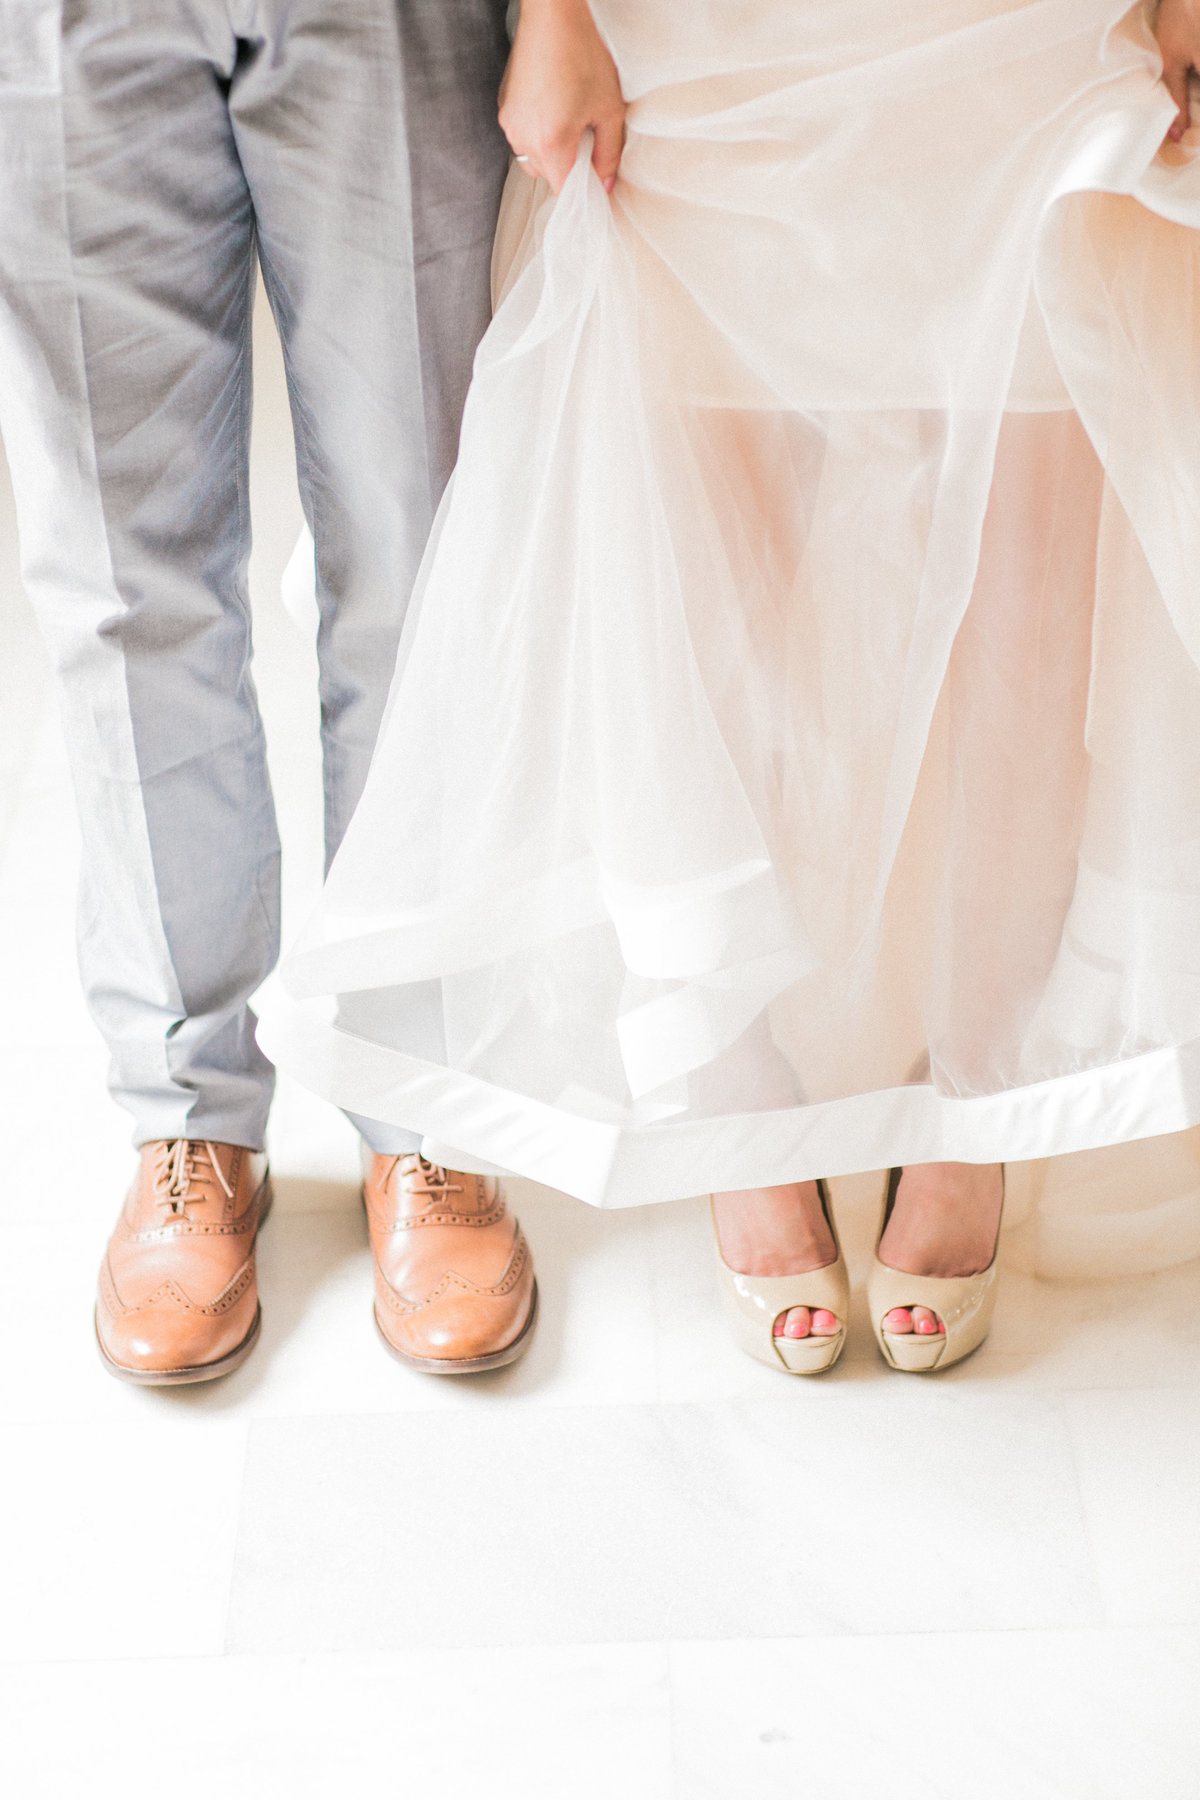 Chic Wedding Shoes Photo